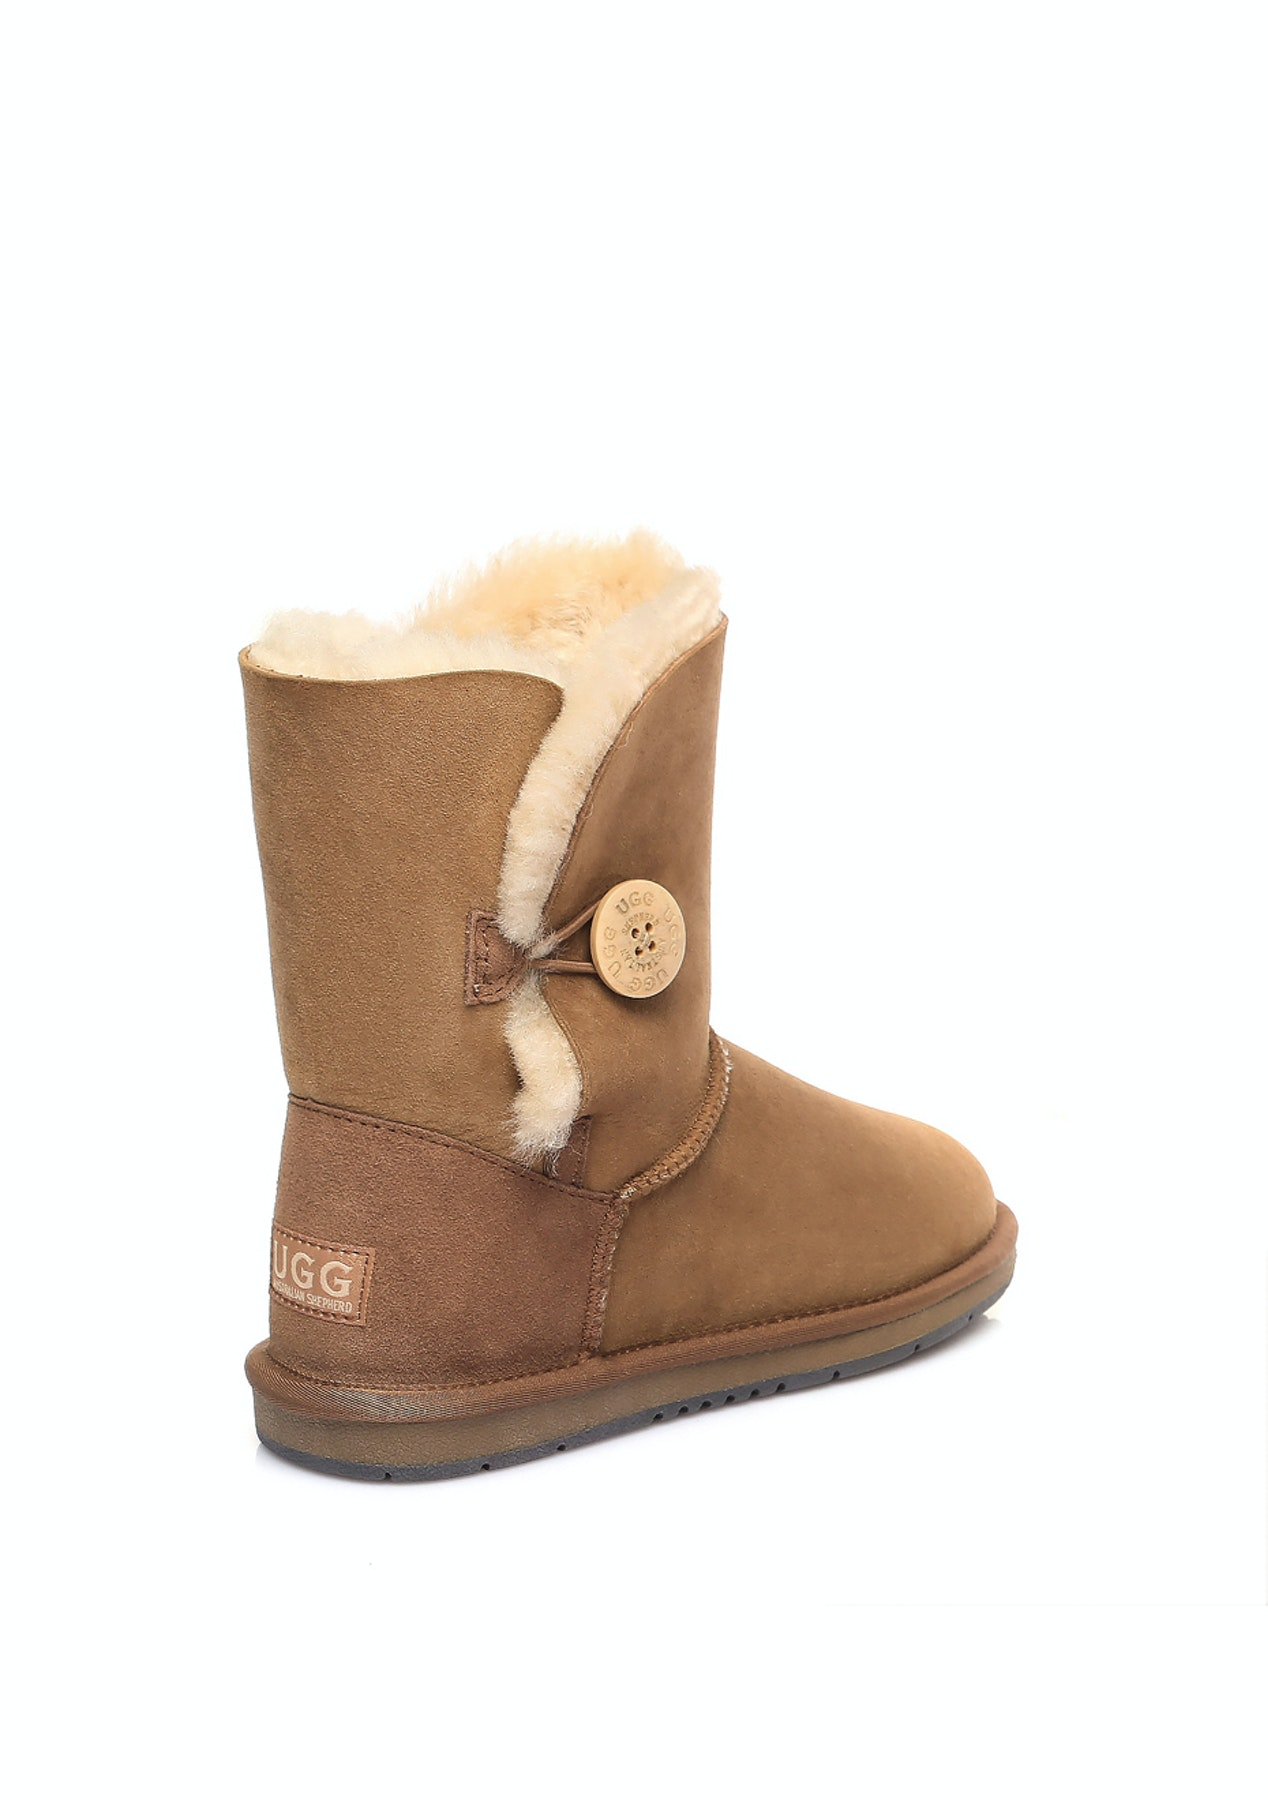 b39c42943d Australian Shepherd Uggs - Short button Water Resistant - Chestnut - Ever  Uggs - Onceit